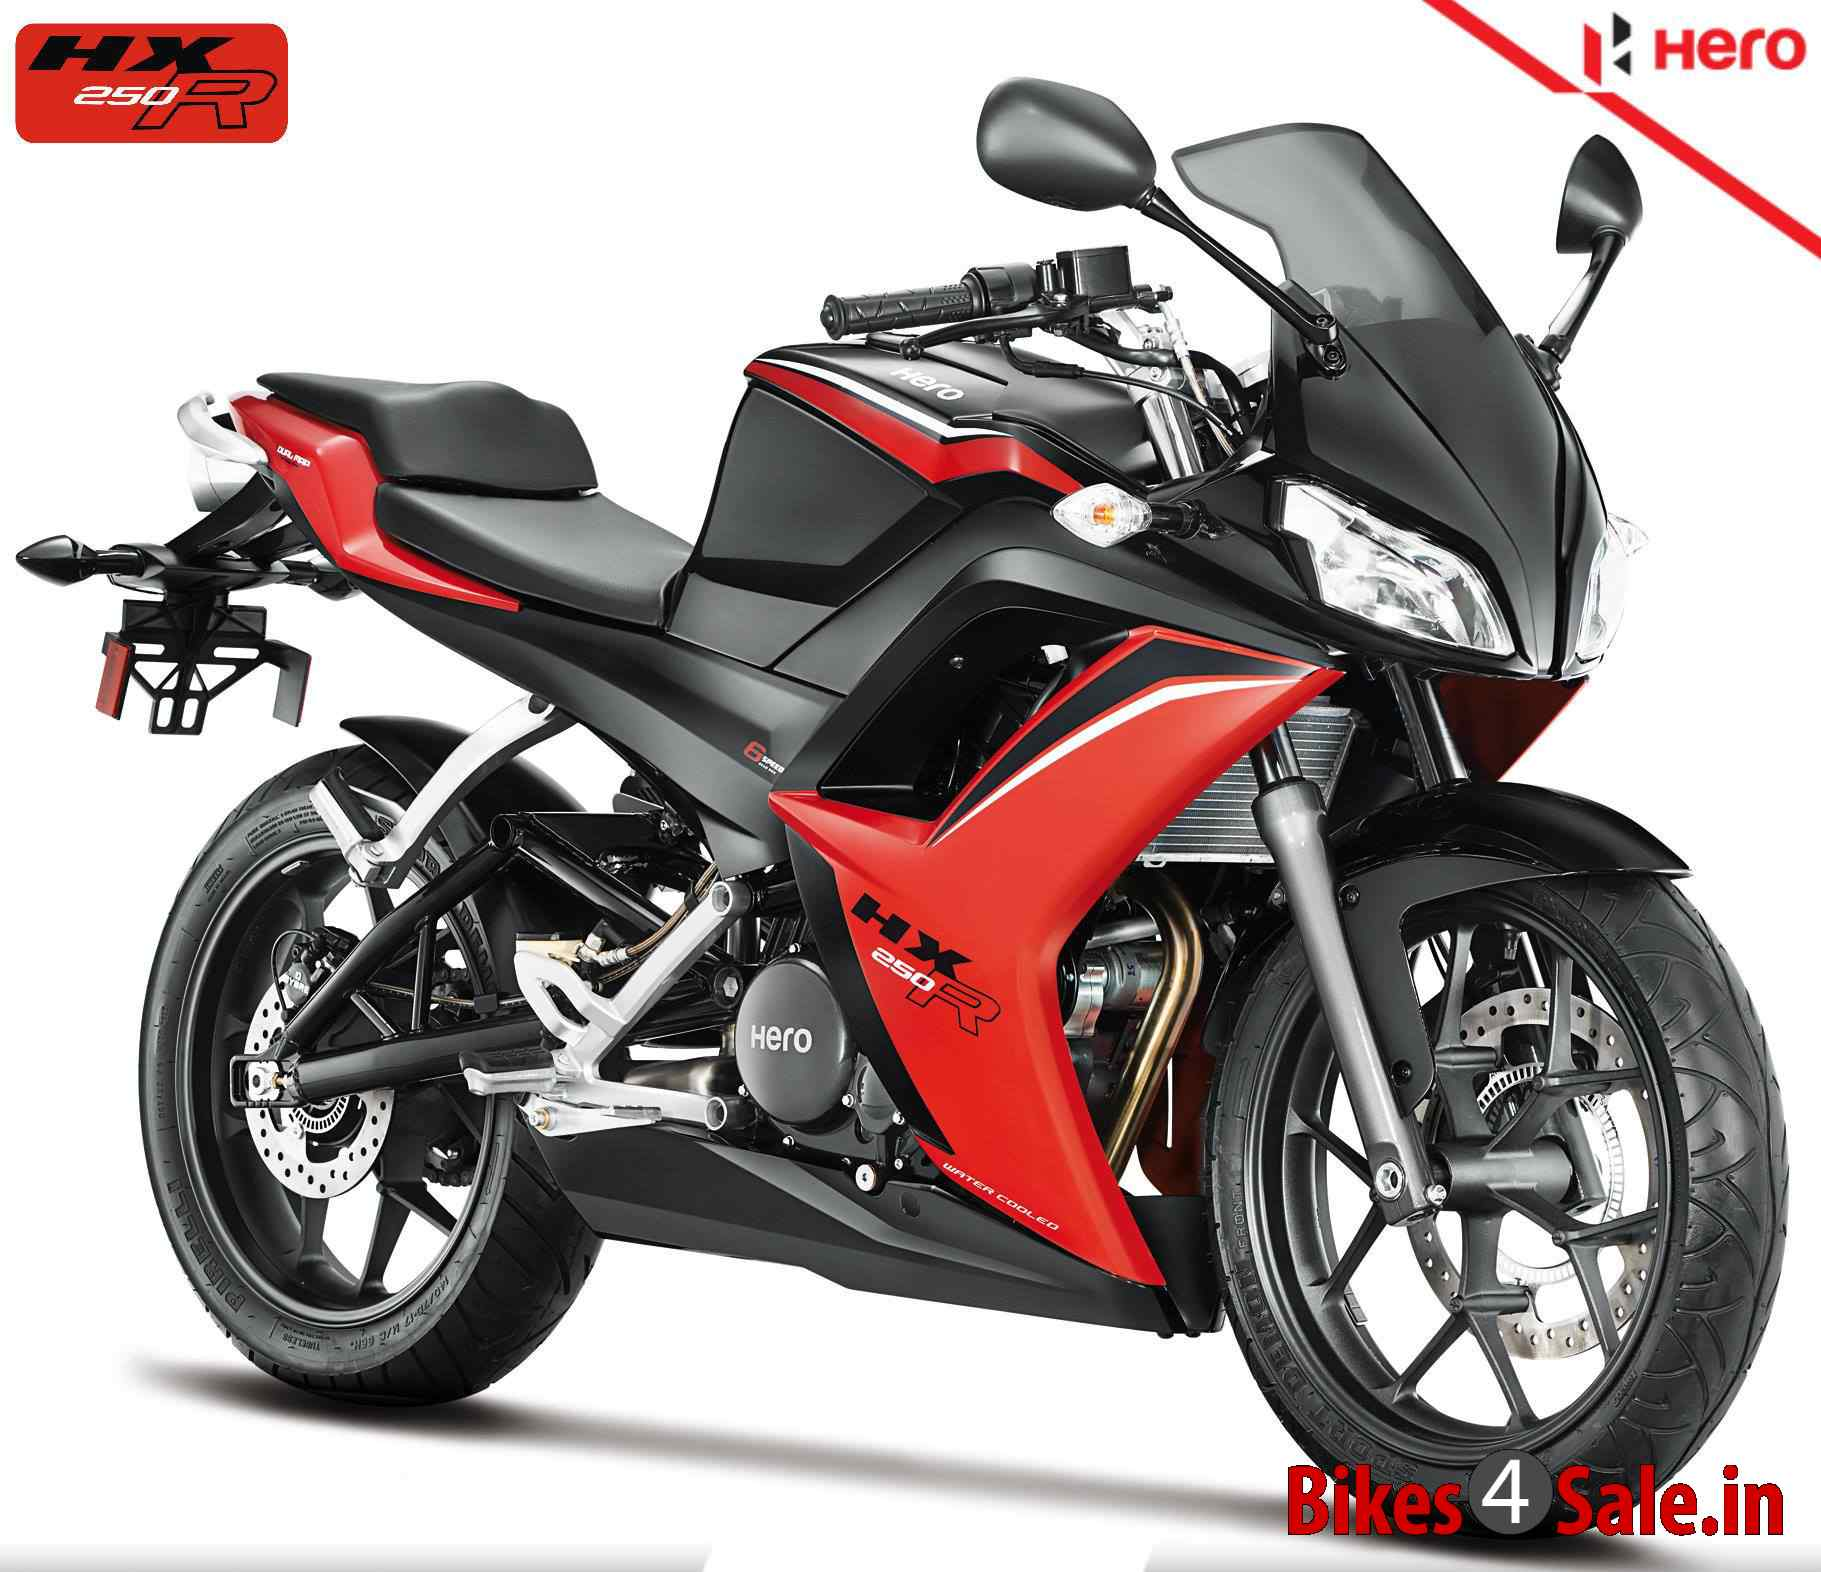 Hero Hx250r Motorcycle Picture Gallery In Black And Red